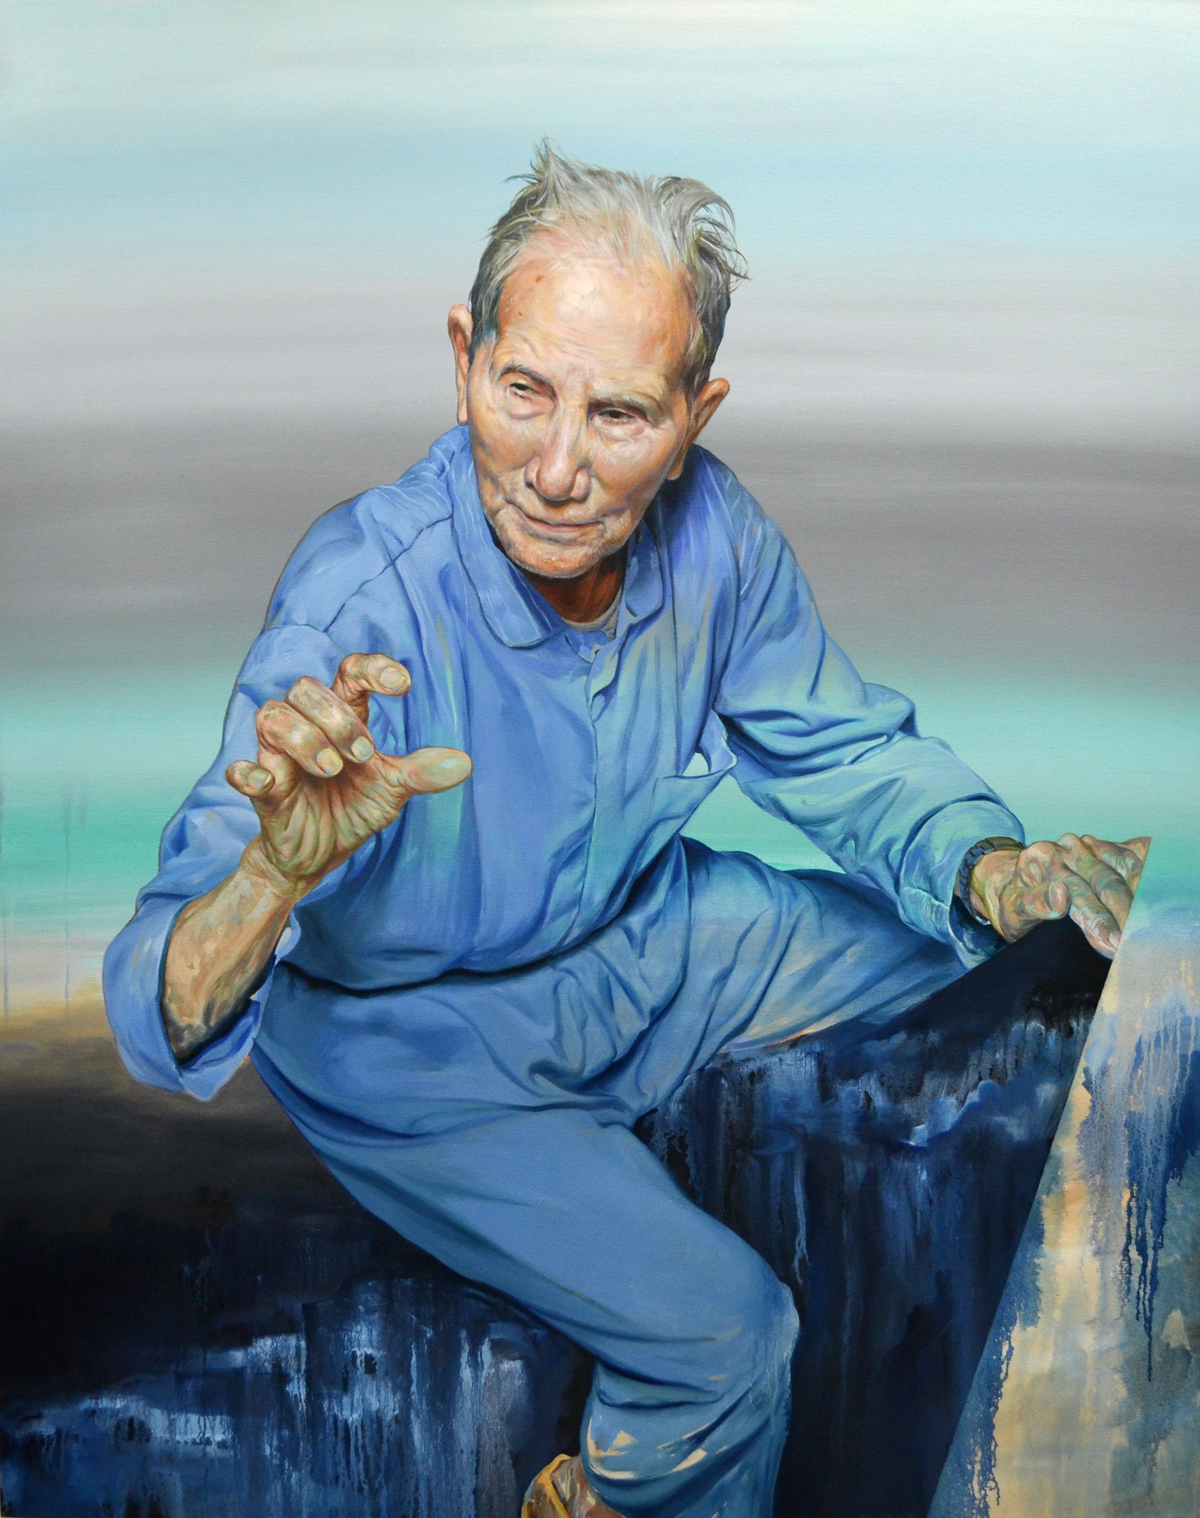 Reiner Gamboa, Abuelo, oil on canvas.